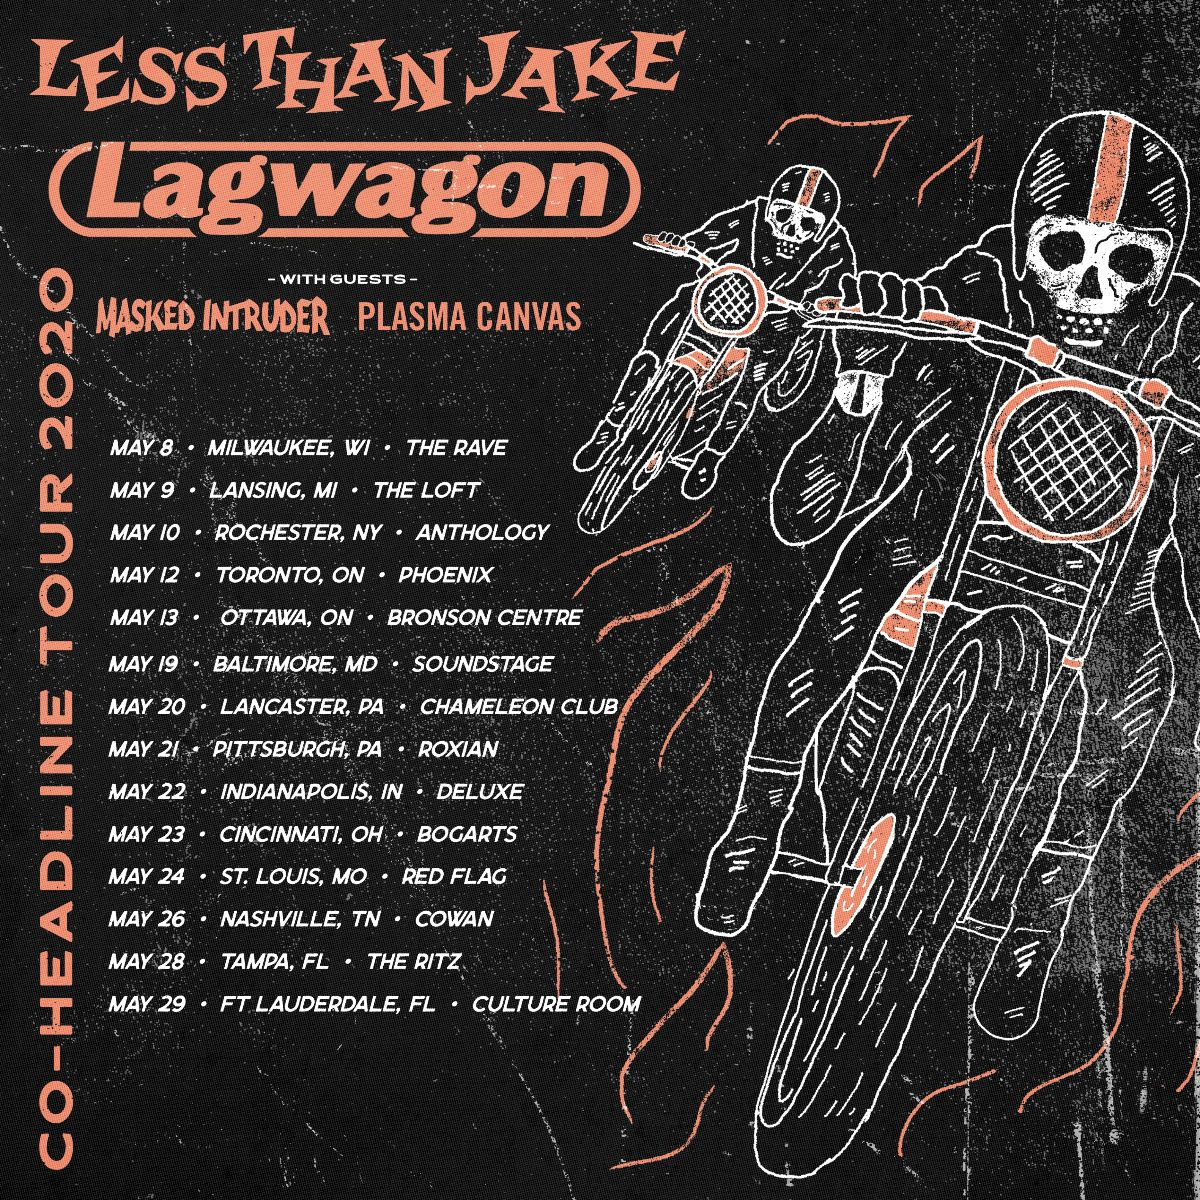 LESS THAN JAKE and LAGWAGON tour